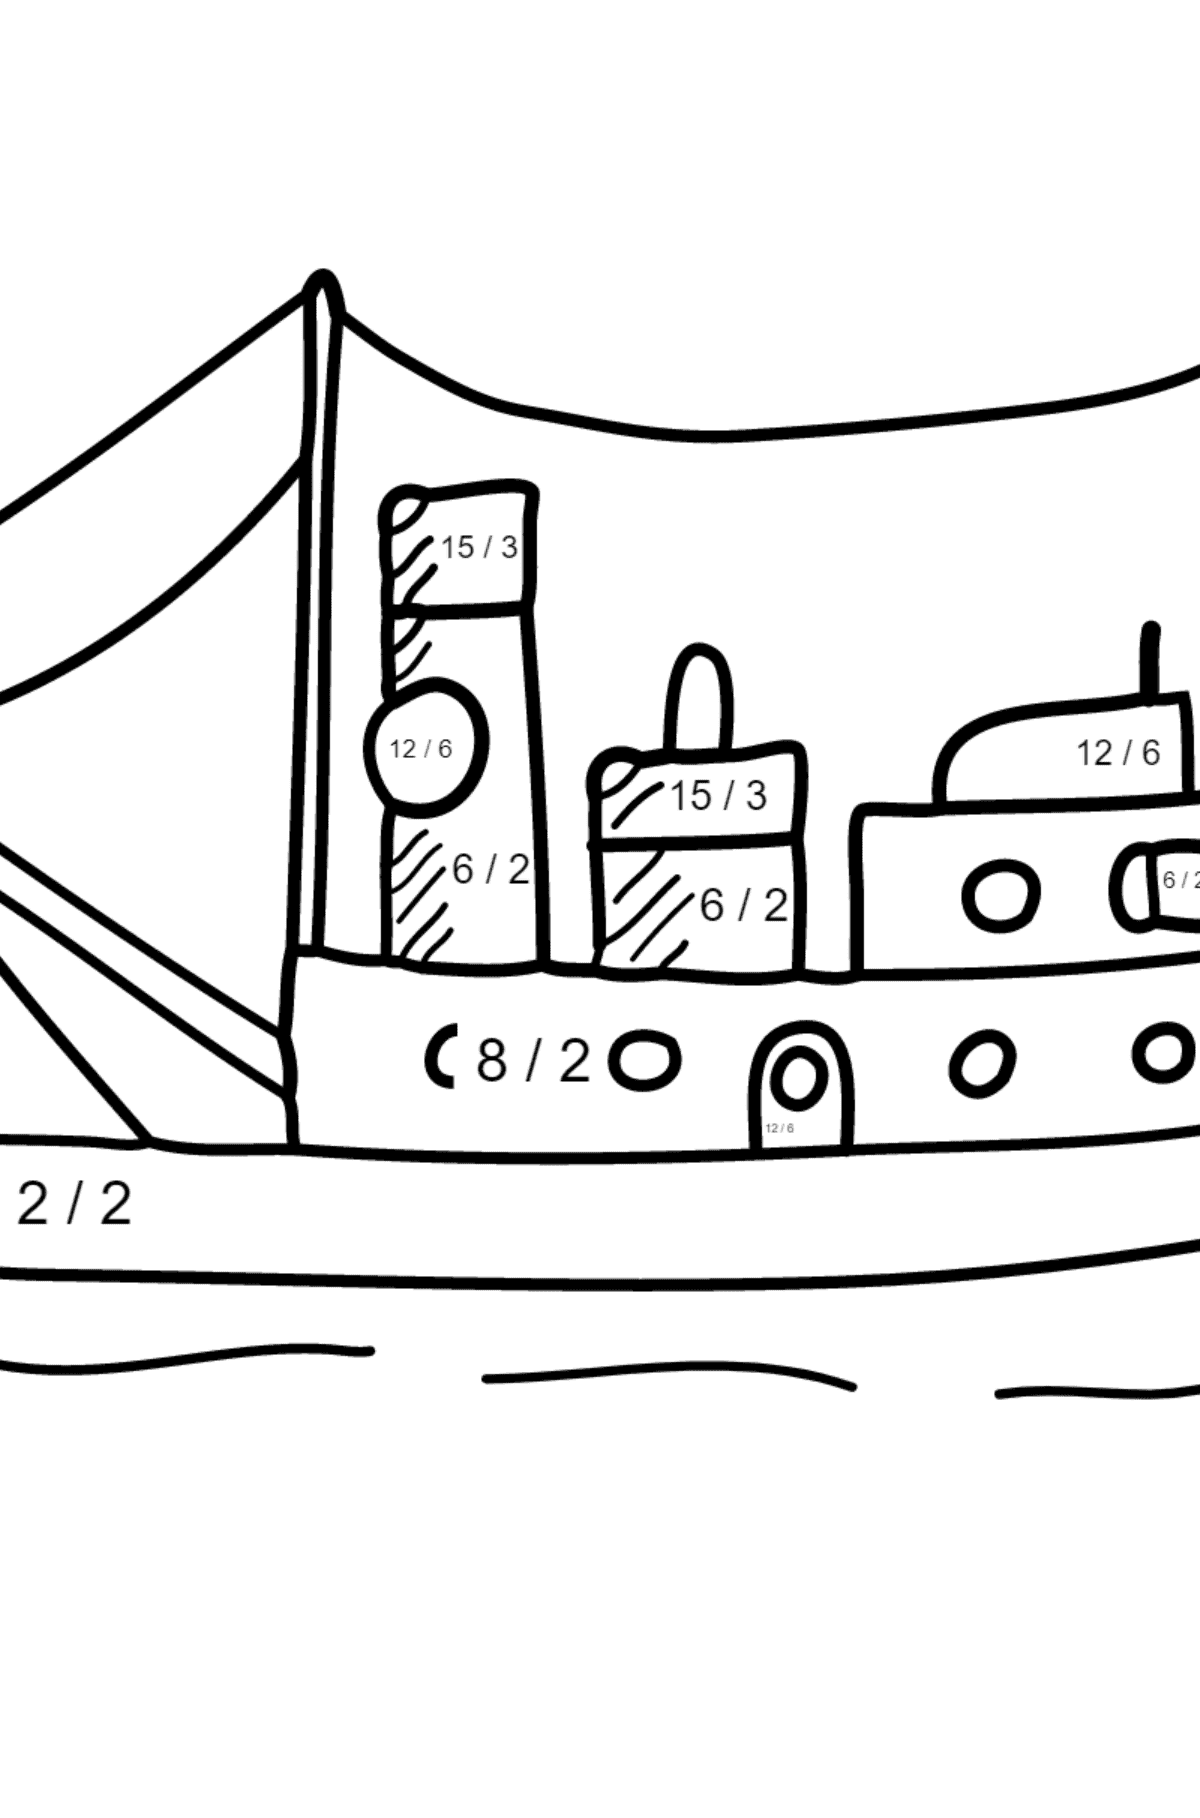 Coloring Page - A Cargo Ship - Math Coloring - Division for Kids